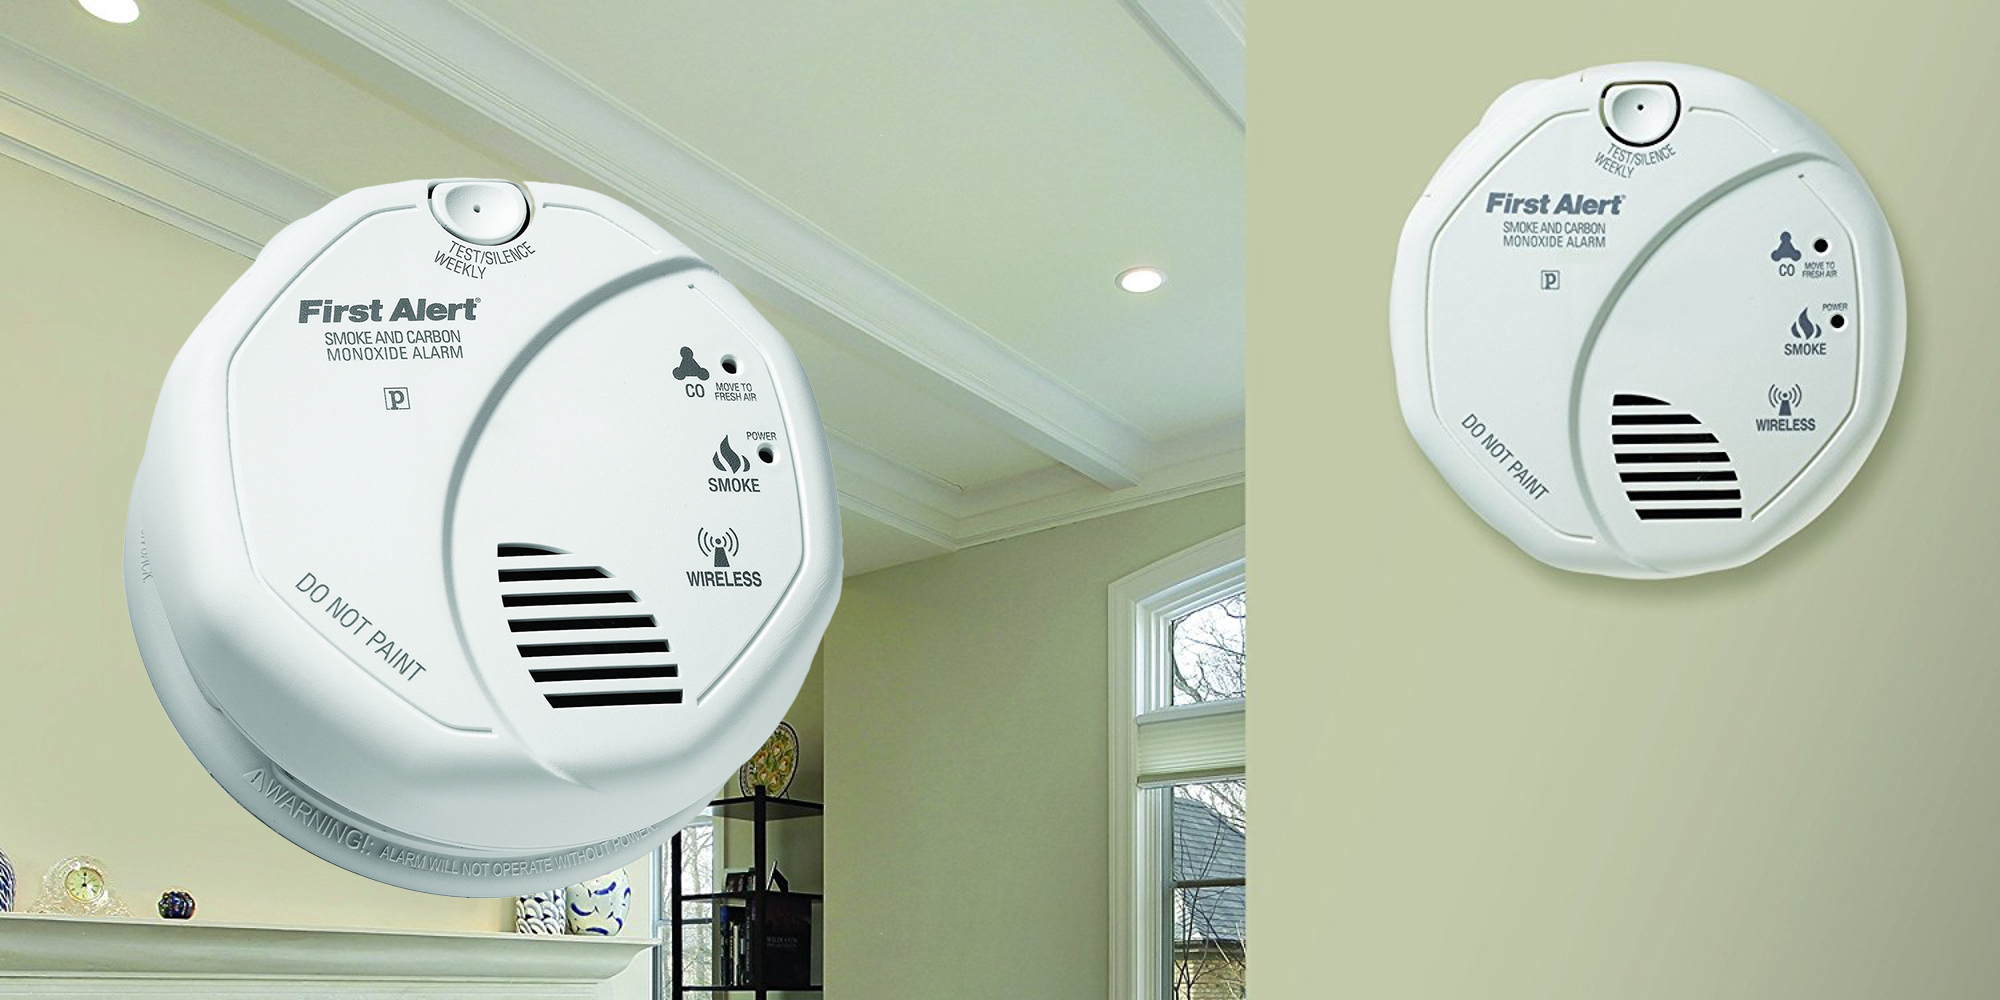 First Alert Z-Wave Smoke Alarm